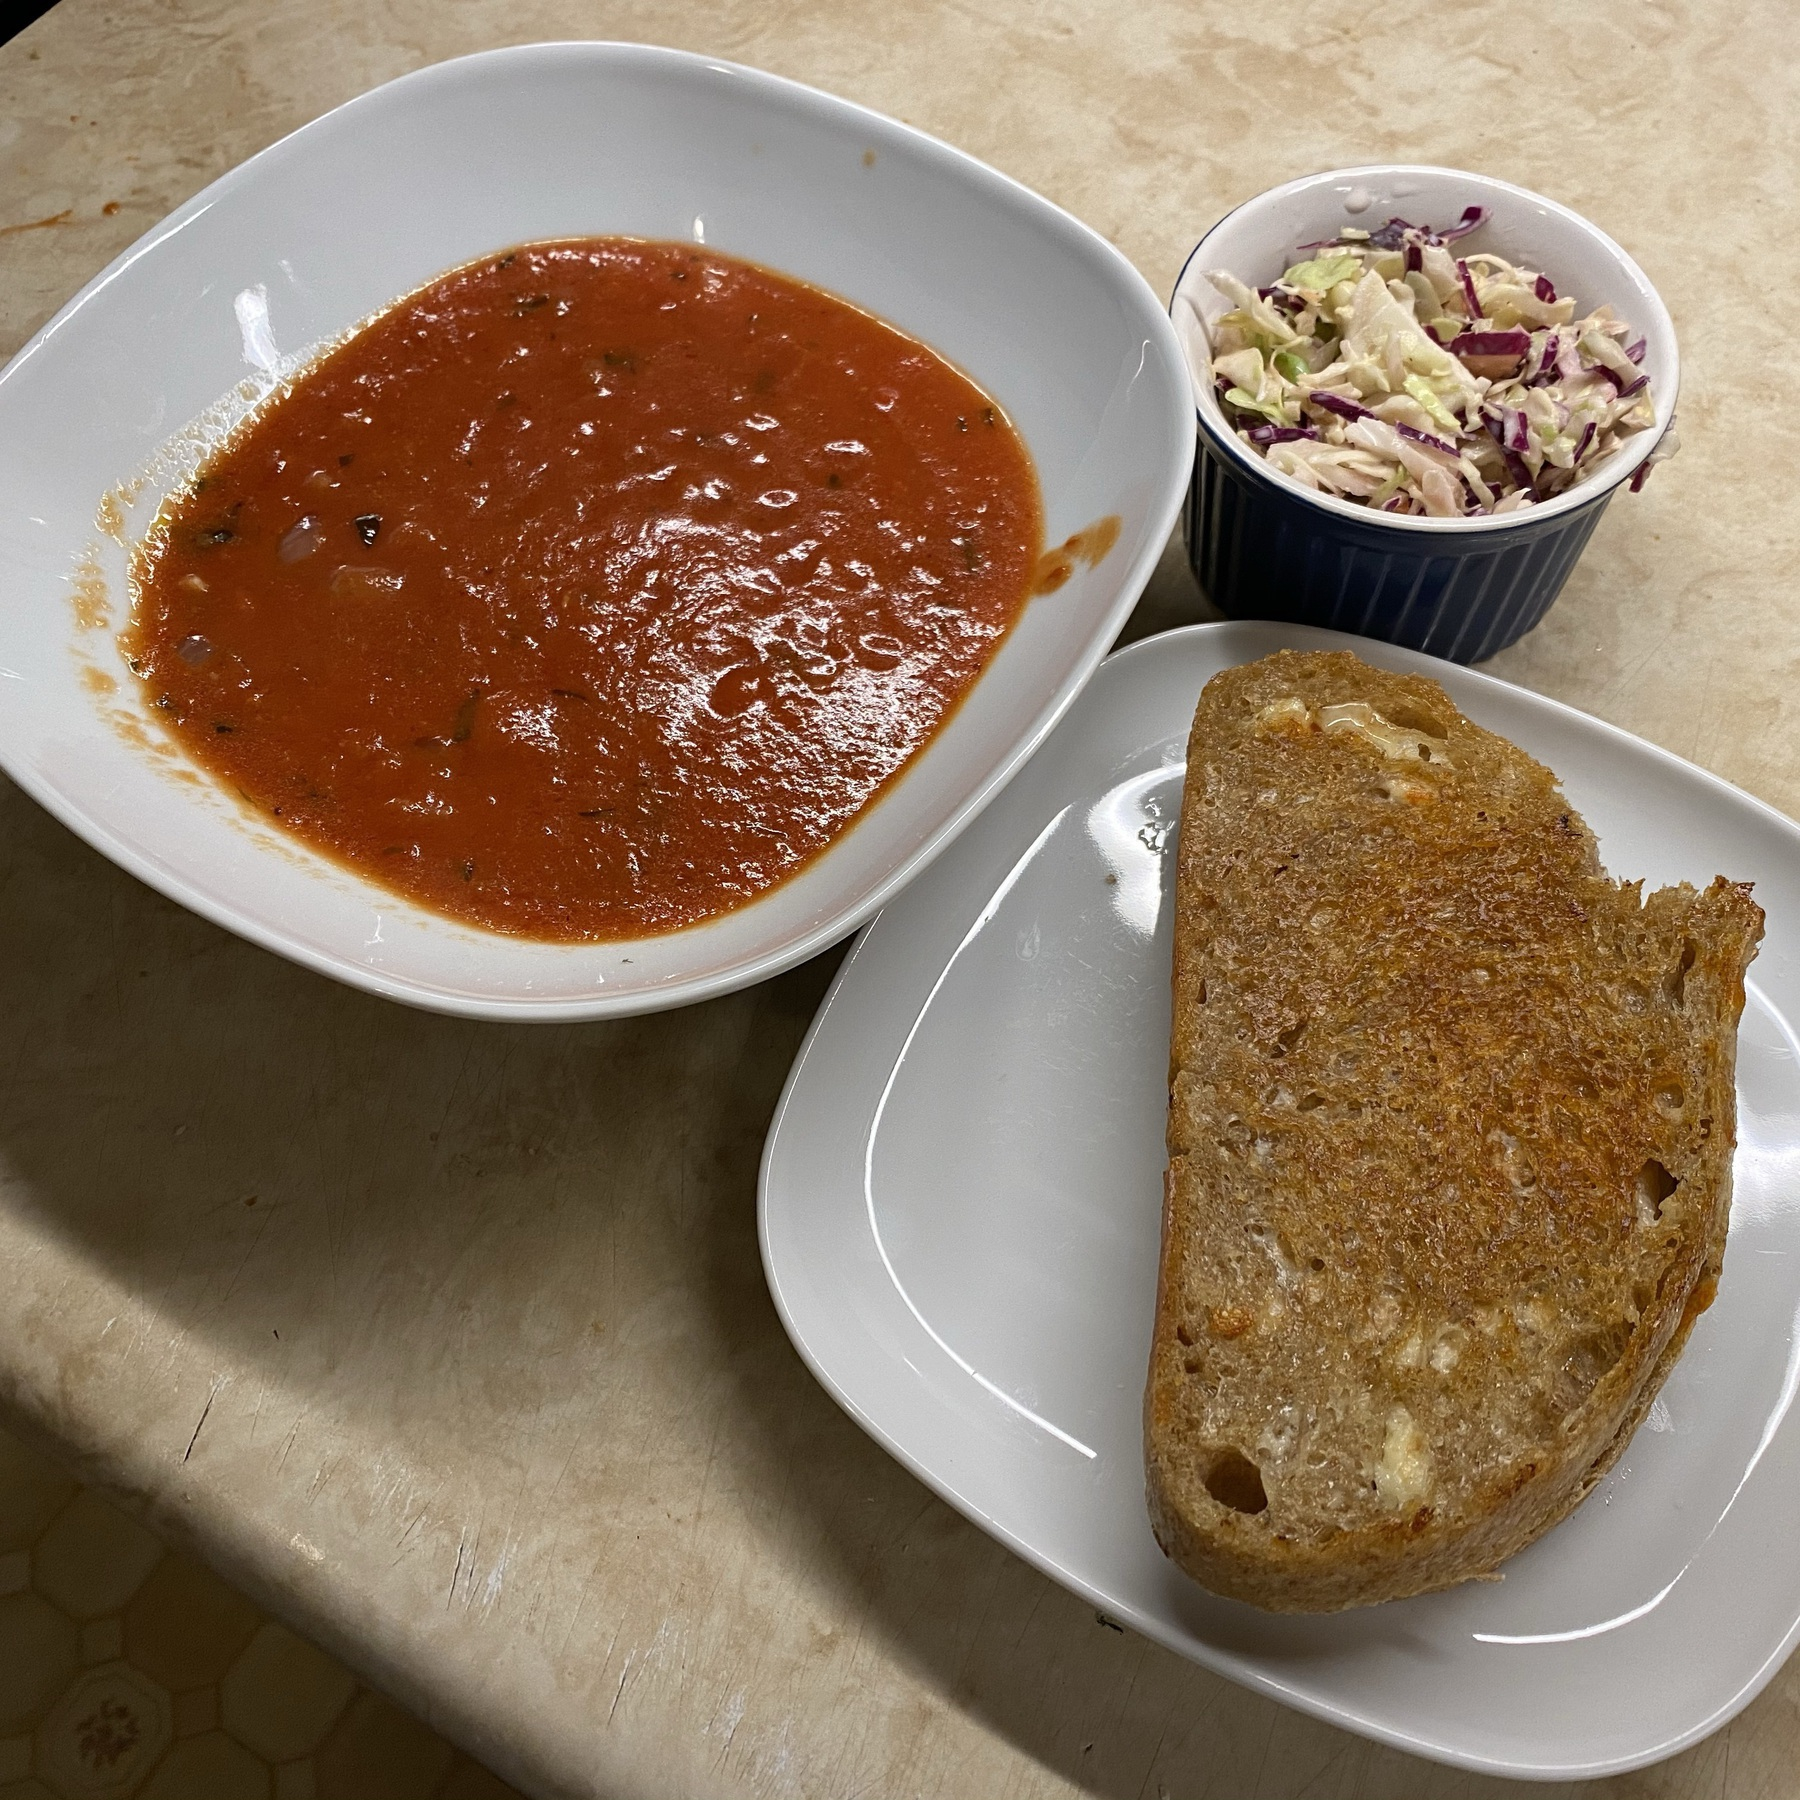 Bowl of tomato soup, grilled cheese sandwich on plate, and bowl of coleslaw.